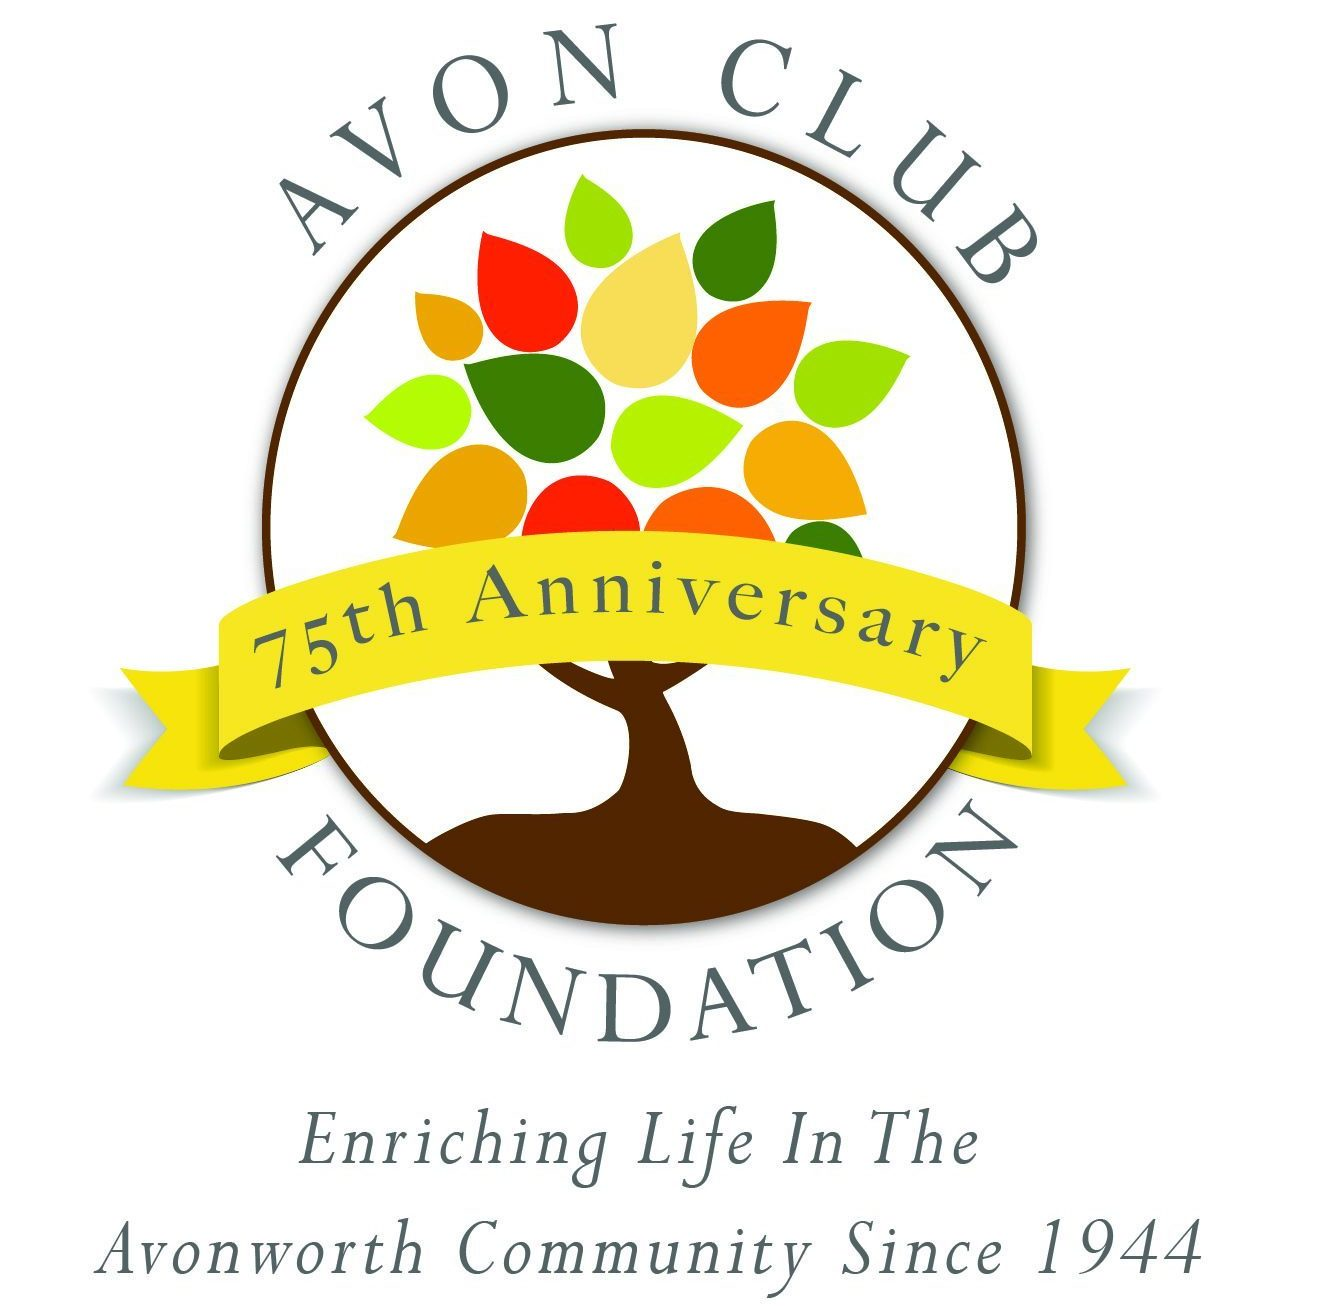 Avon Club Foundation